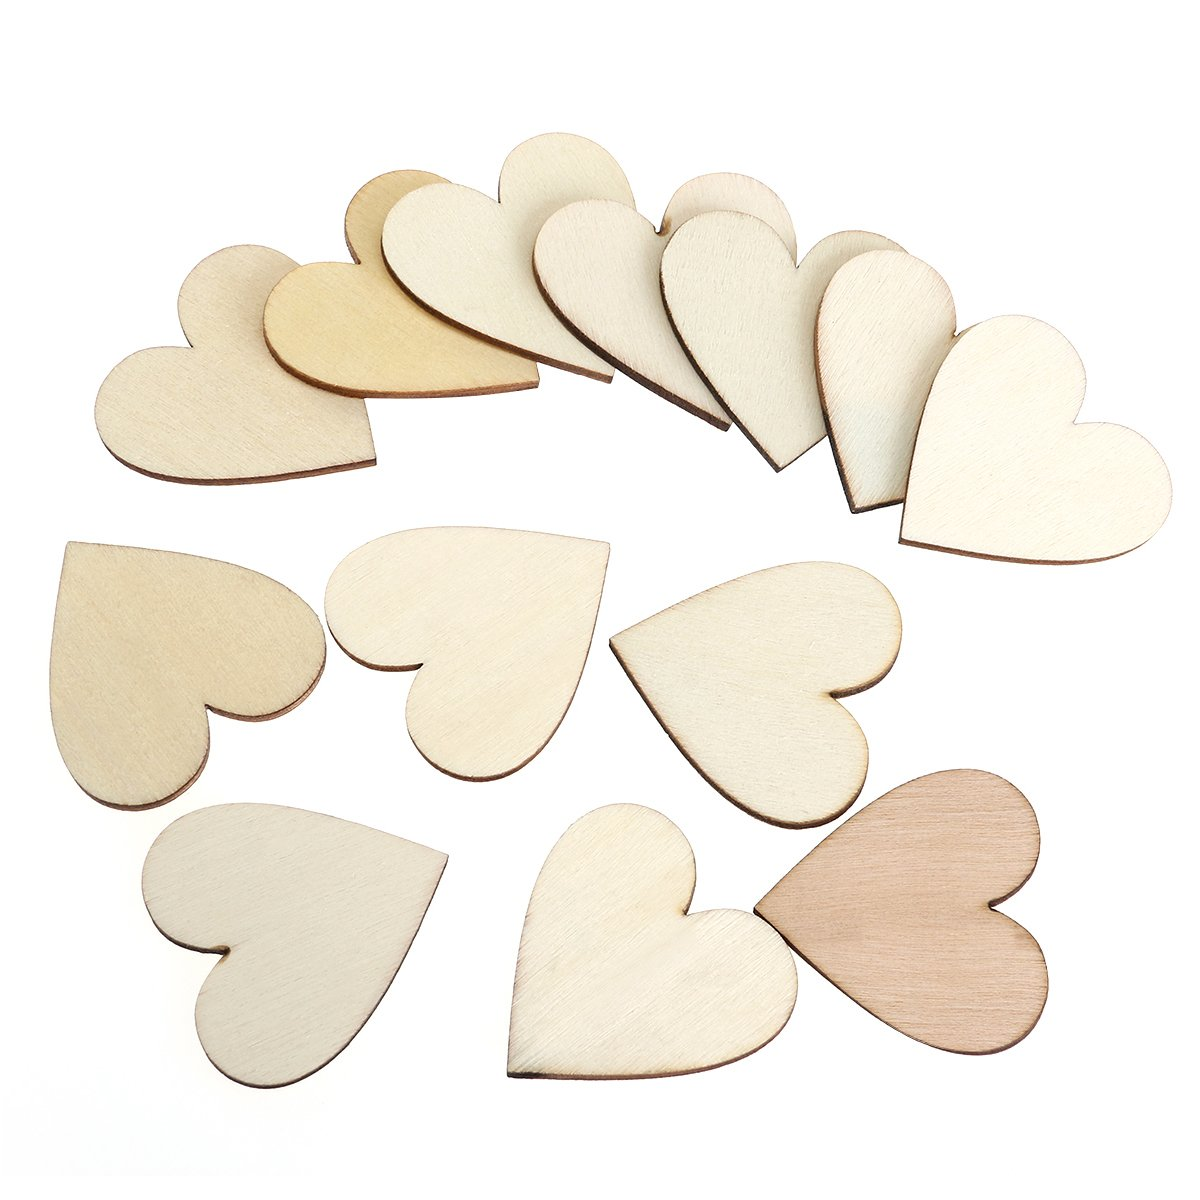 OULII Blank Heart Wood Slices Discs for DIY Crafts Embellishments 40mm,Pack of 100 (Wood Color)